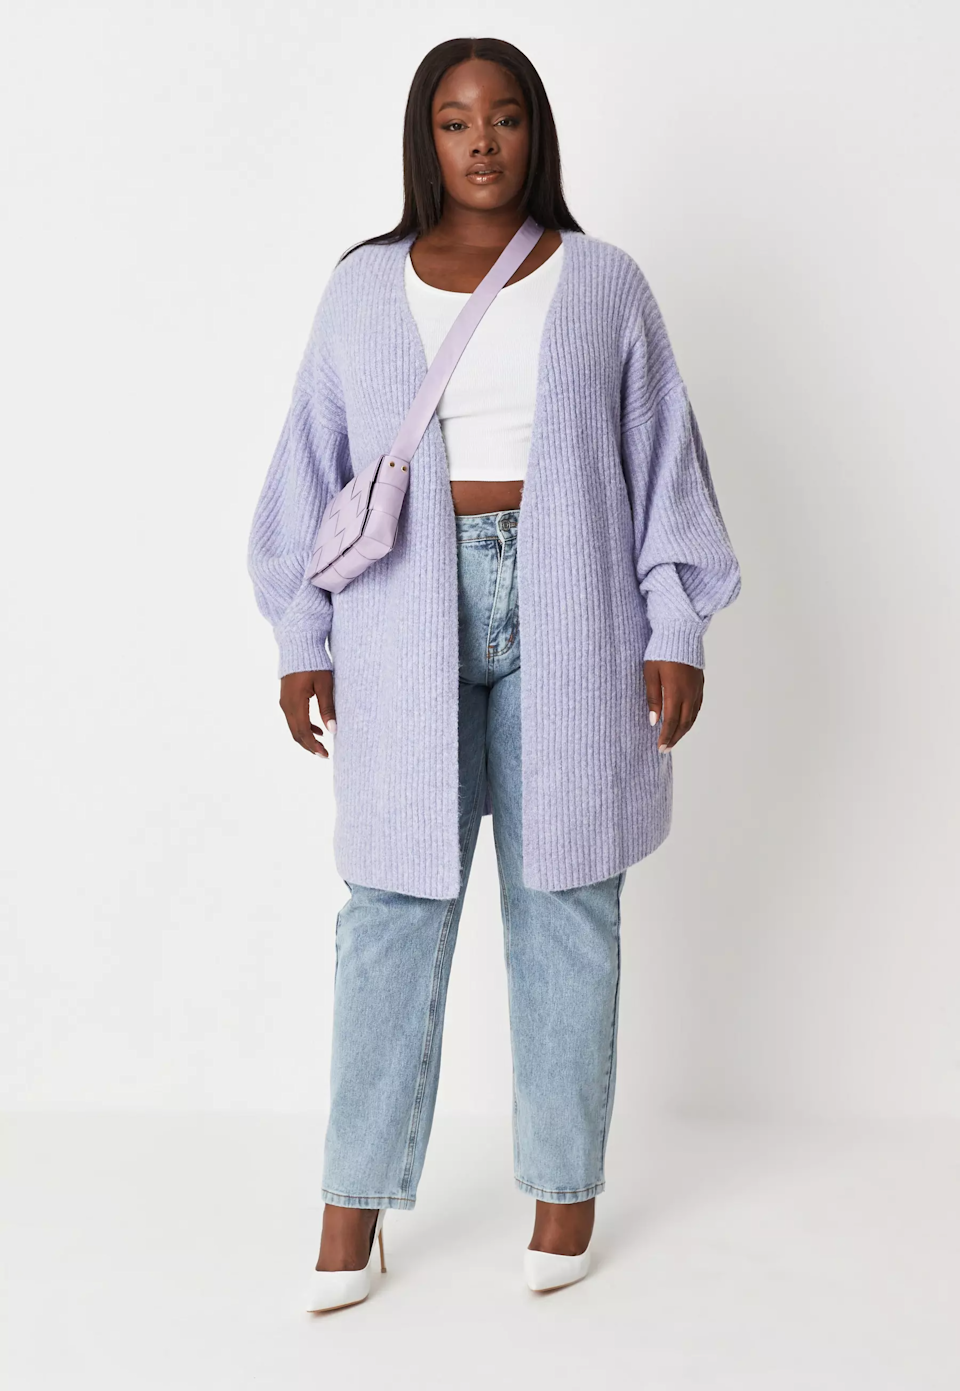 """<br><br><strong>Missguided</strong> Plus Size Lilac Tuck Sleeve Cardigan, $, available at <a href=""""https://go.skimresources.com/?id=30283X879131&url=https%3A%2F%2Fwww.missguidedus.com%2Fplus-size-lilac-tuck-sleeve-knitted-cardigan-10257785"""" rel=""""nofollow noopener"""" target=""""_blank"""" data-ylk=""""slk:Missguided"""" class=""""link rapid-noclick-resp"""">Missguided</a>"""